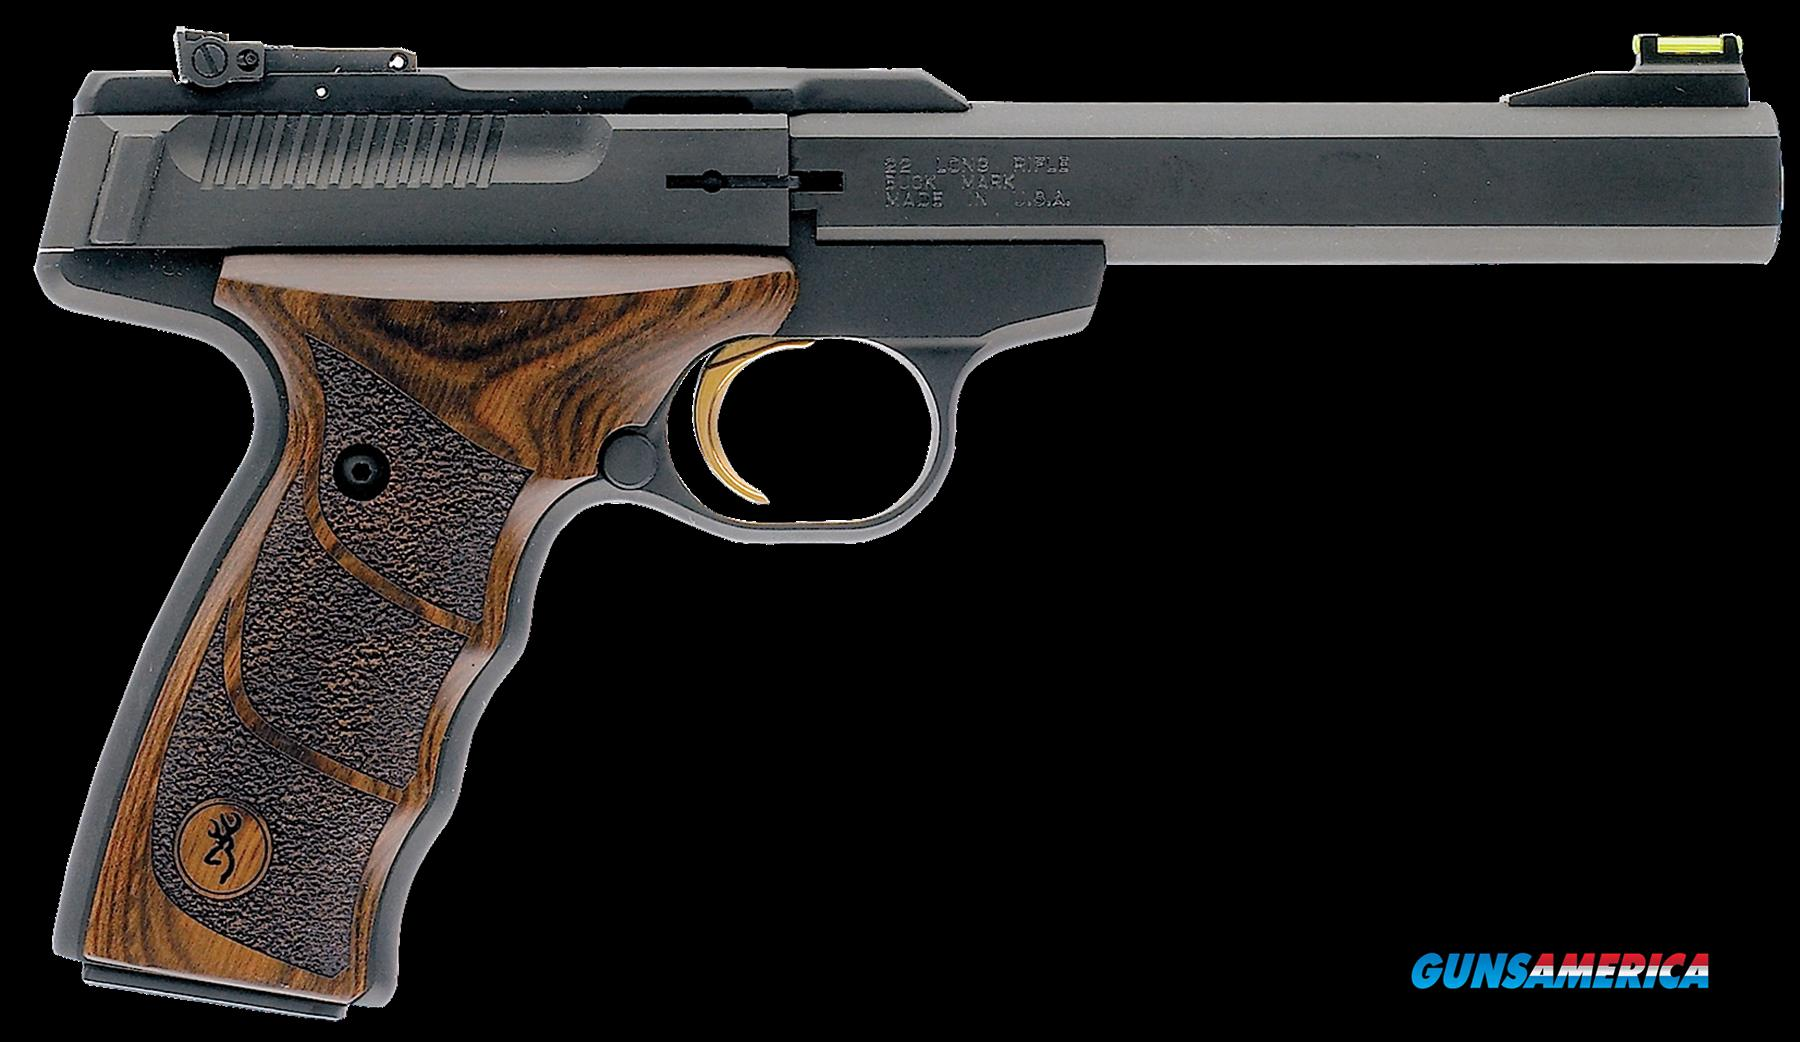 "Browning 051428490 Buck Mark Plus UDX *CA* 22LR 5.5"" 10+1 Syn Walnut Grip Blued  Guns > Pistols > Browning Pistols > Buckmark"